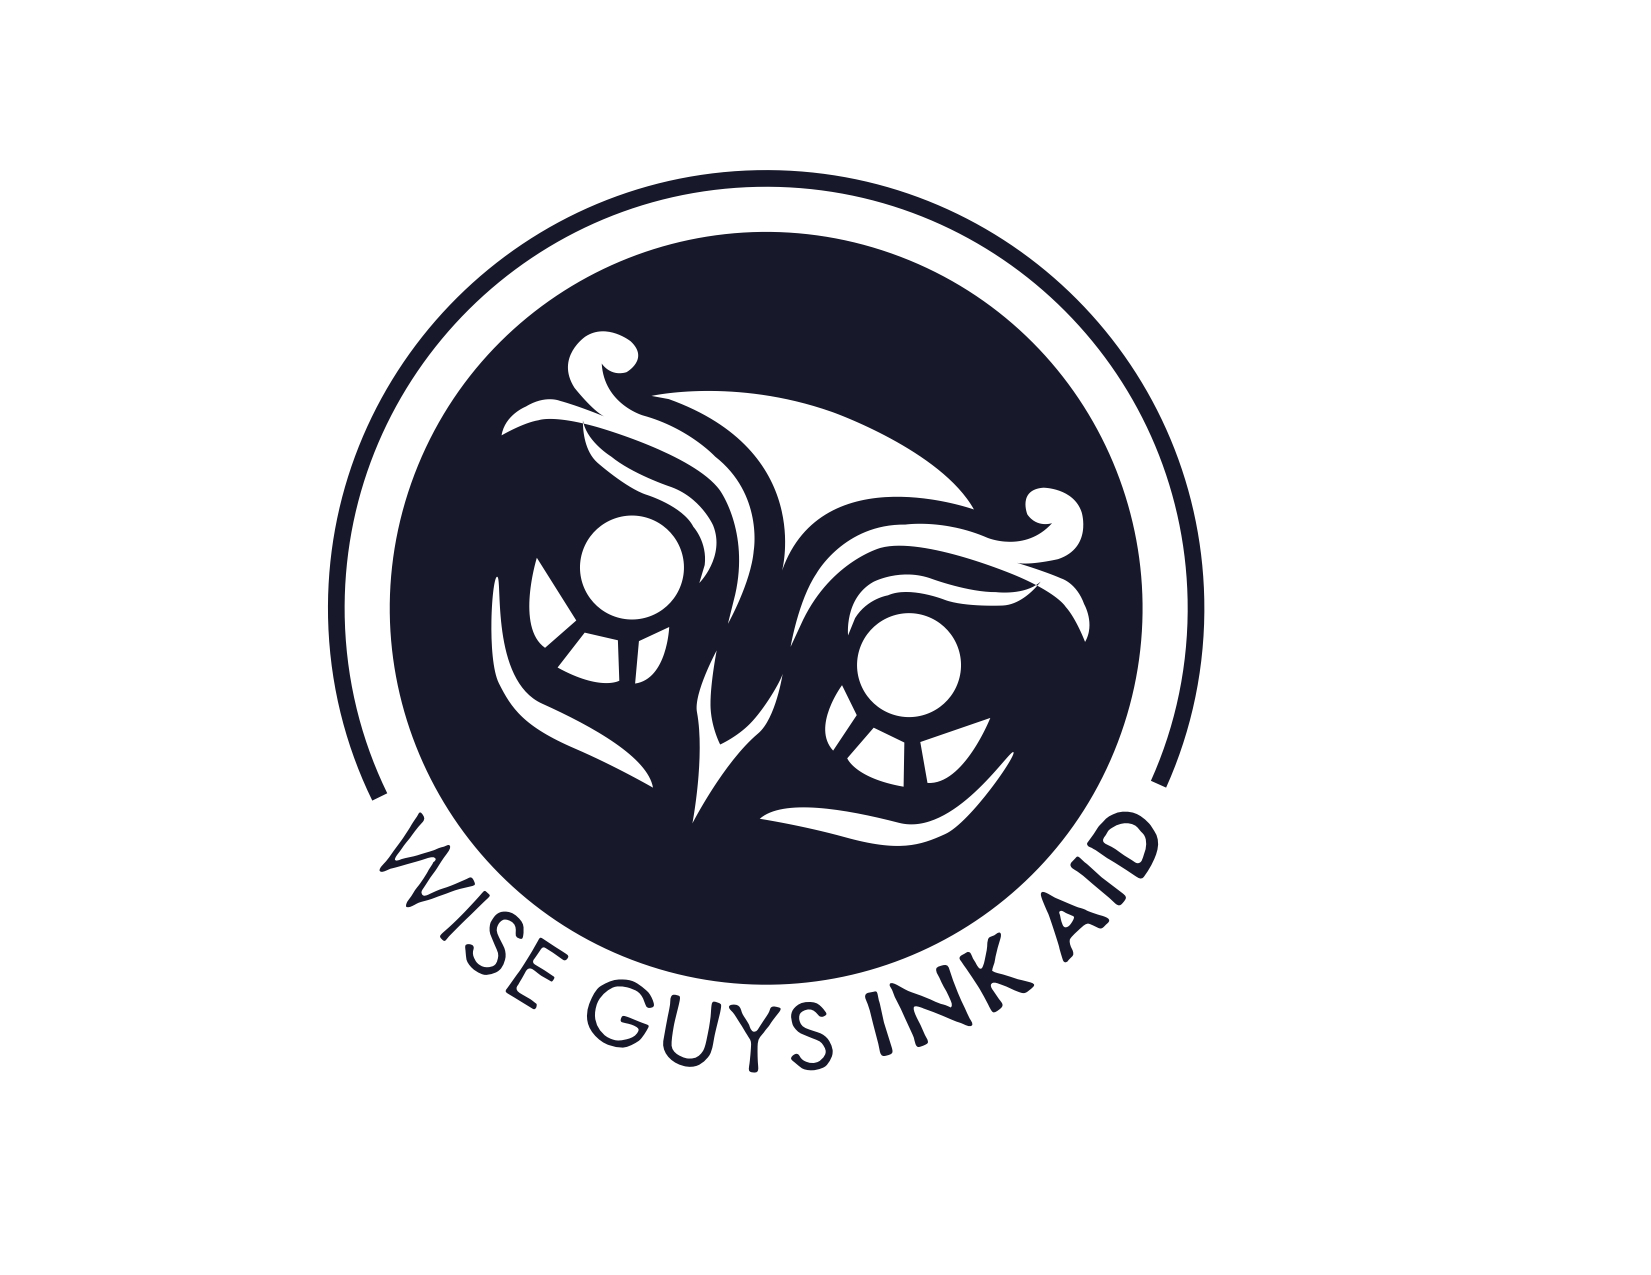 Wise Guys logo